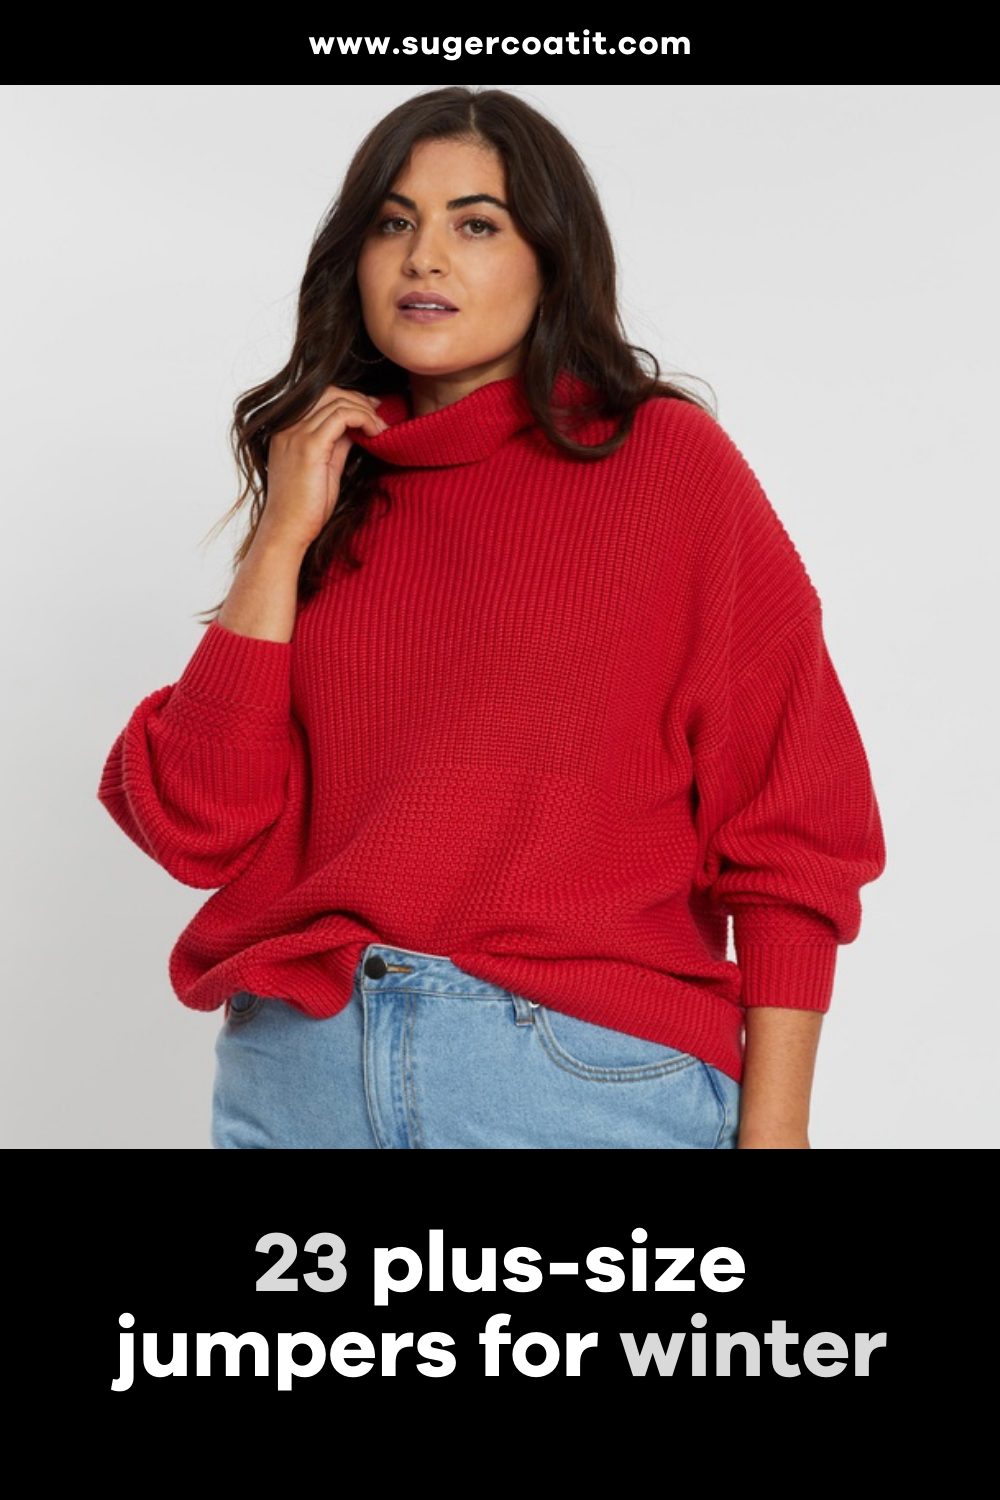 23 plus-size jumpers for winter - Suger Coat It